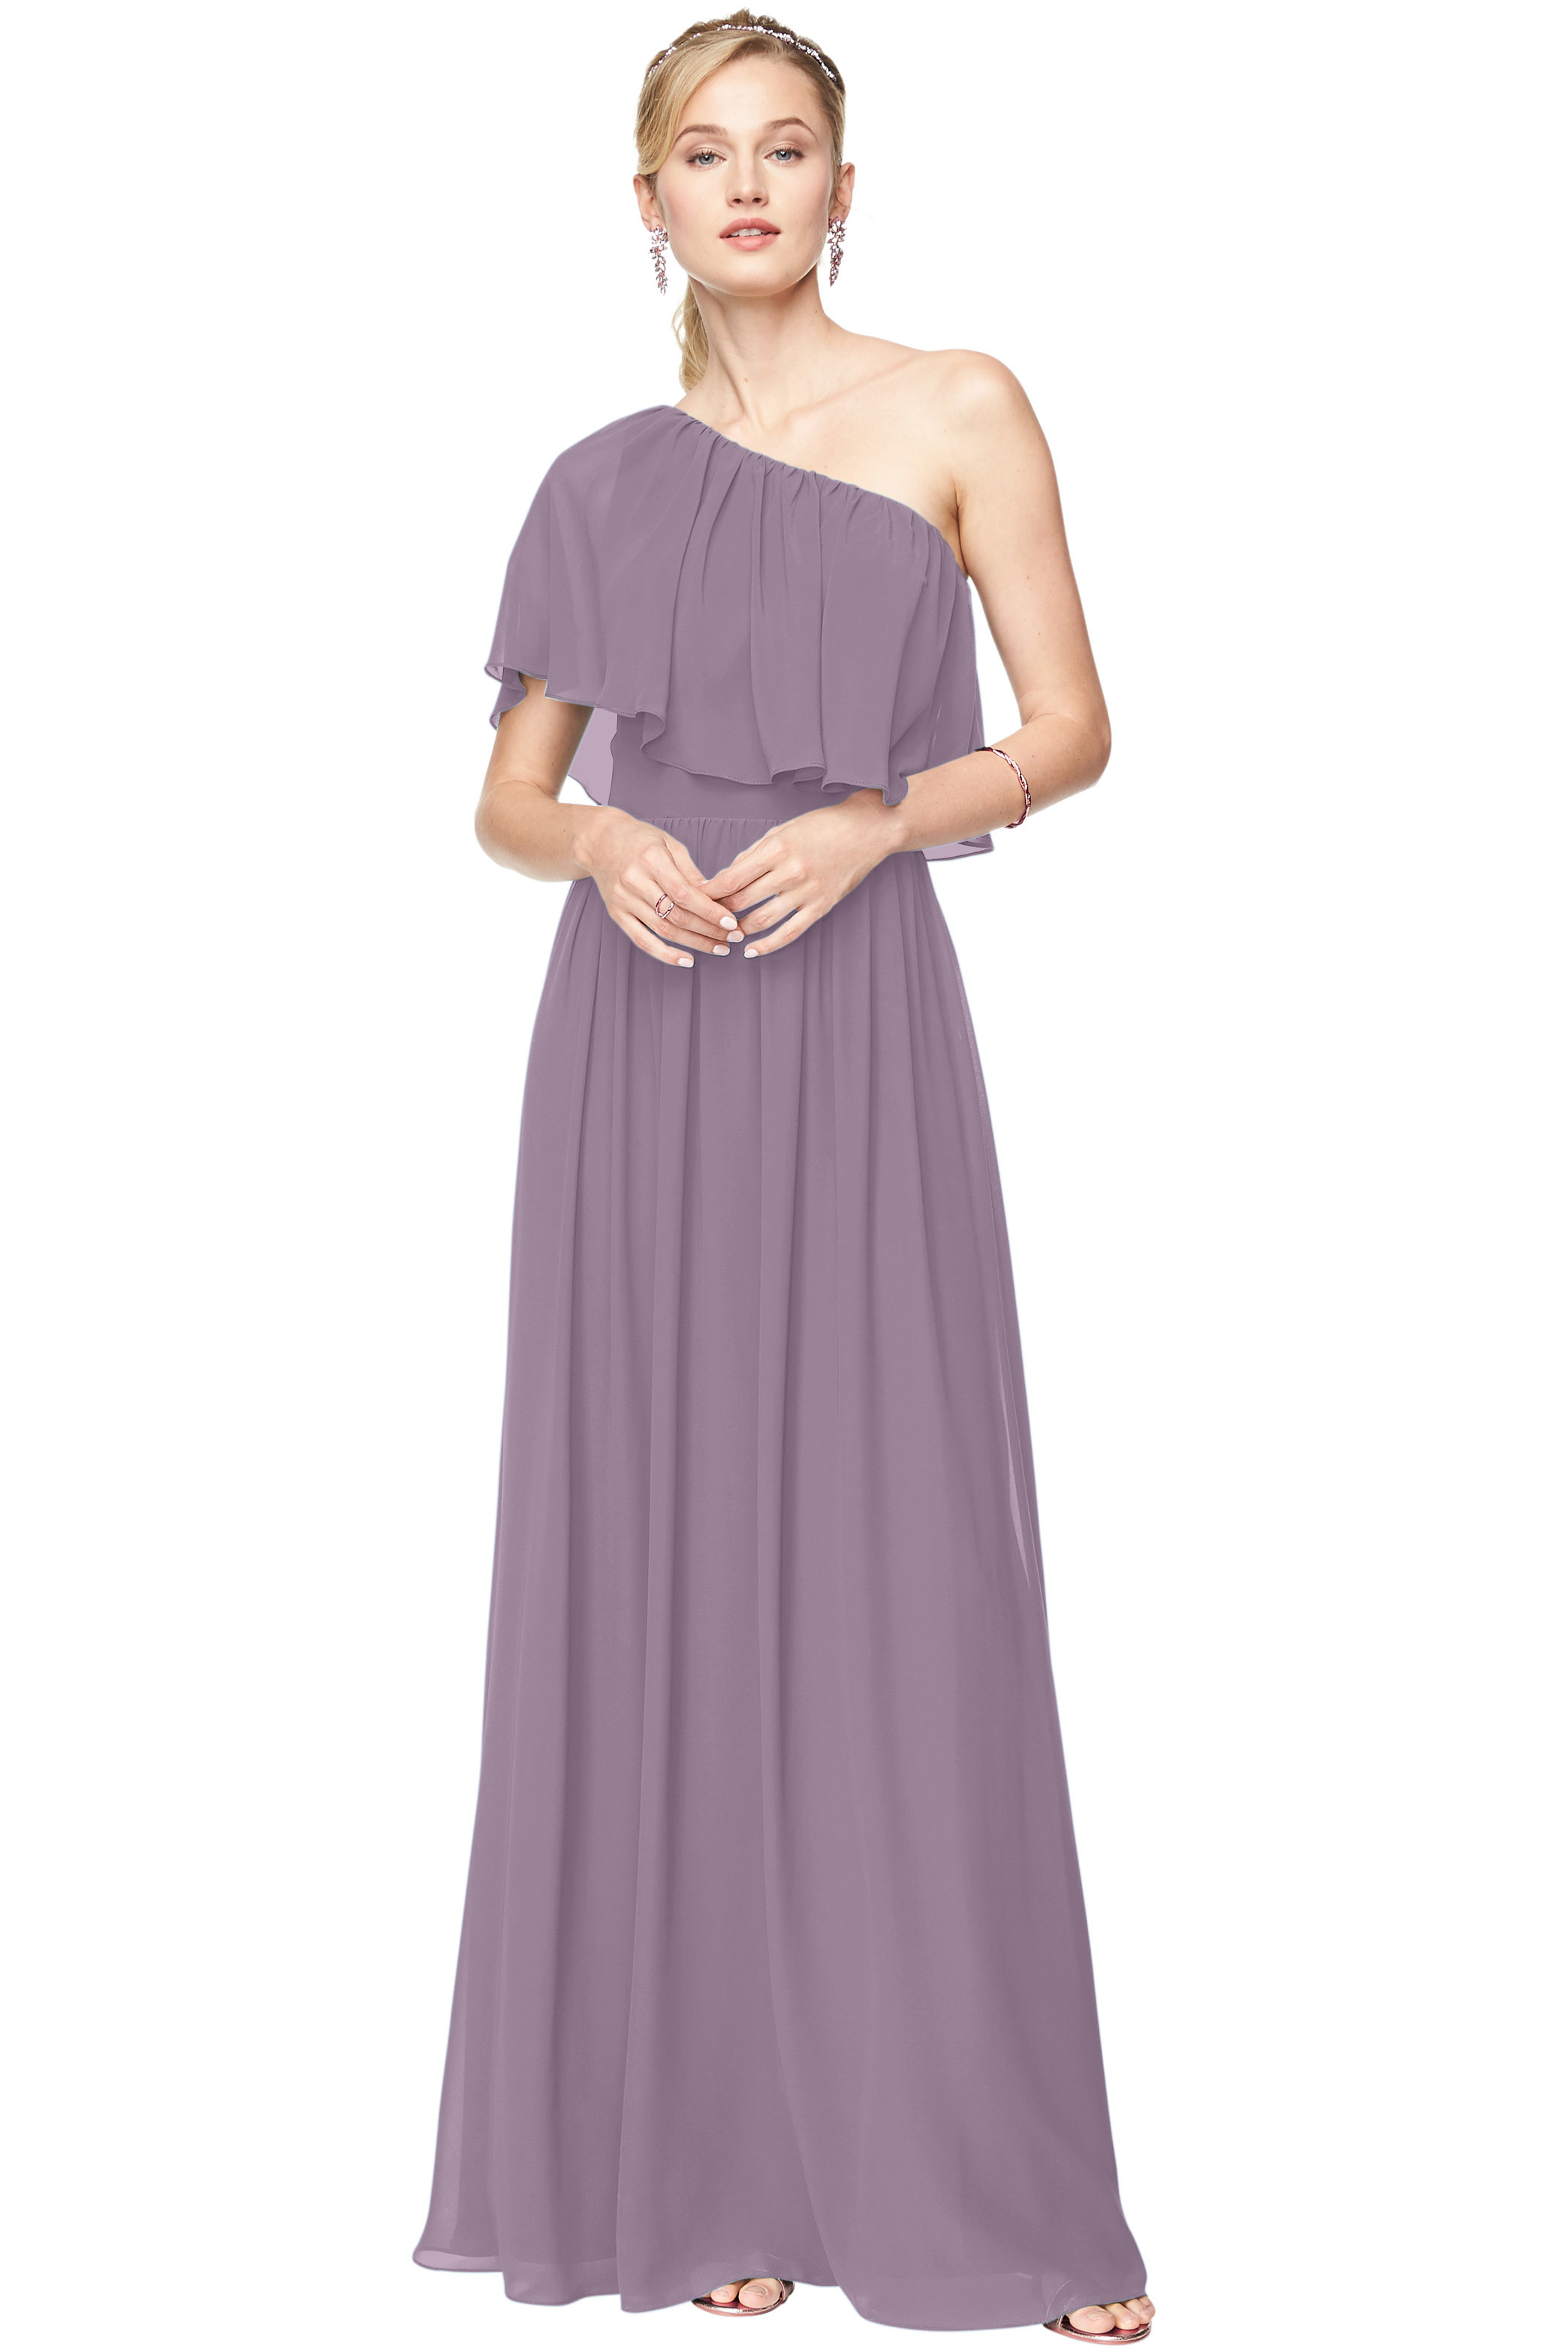 Bill Levkoff VICTORIAN LILAC Chiffon One Shoulder A-Line gown, $184.00 Front